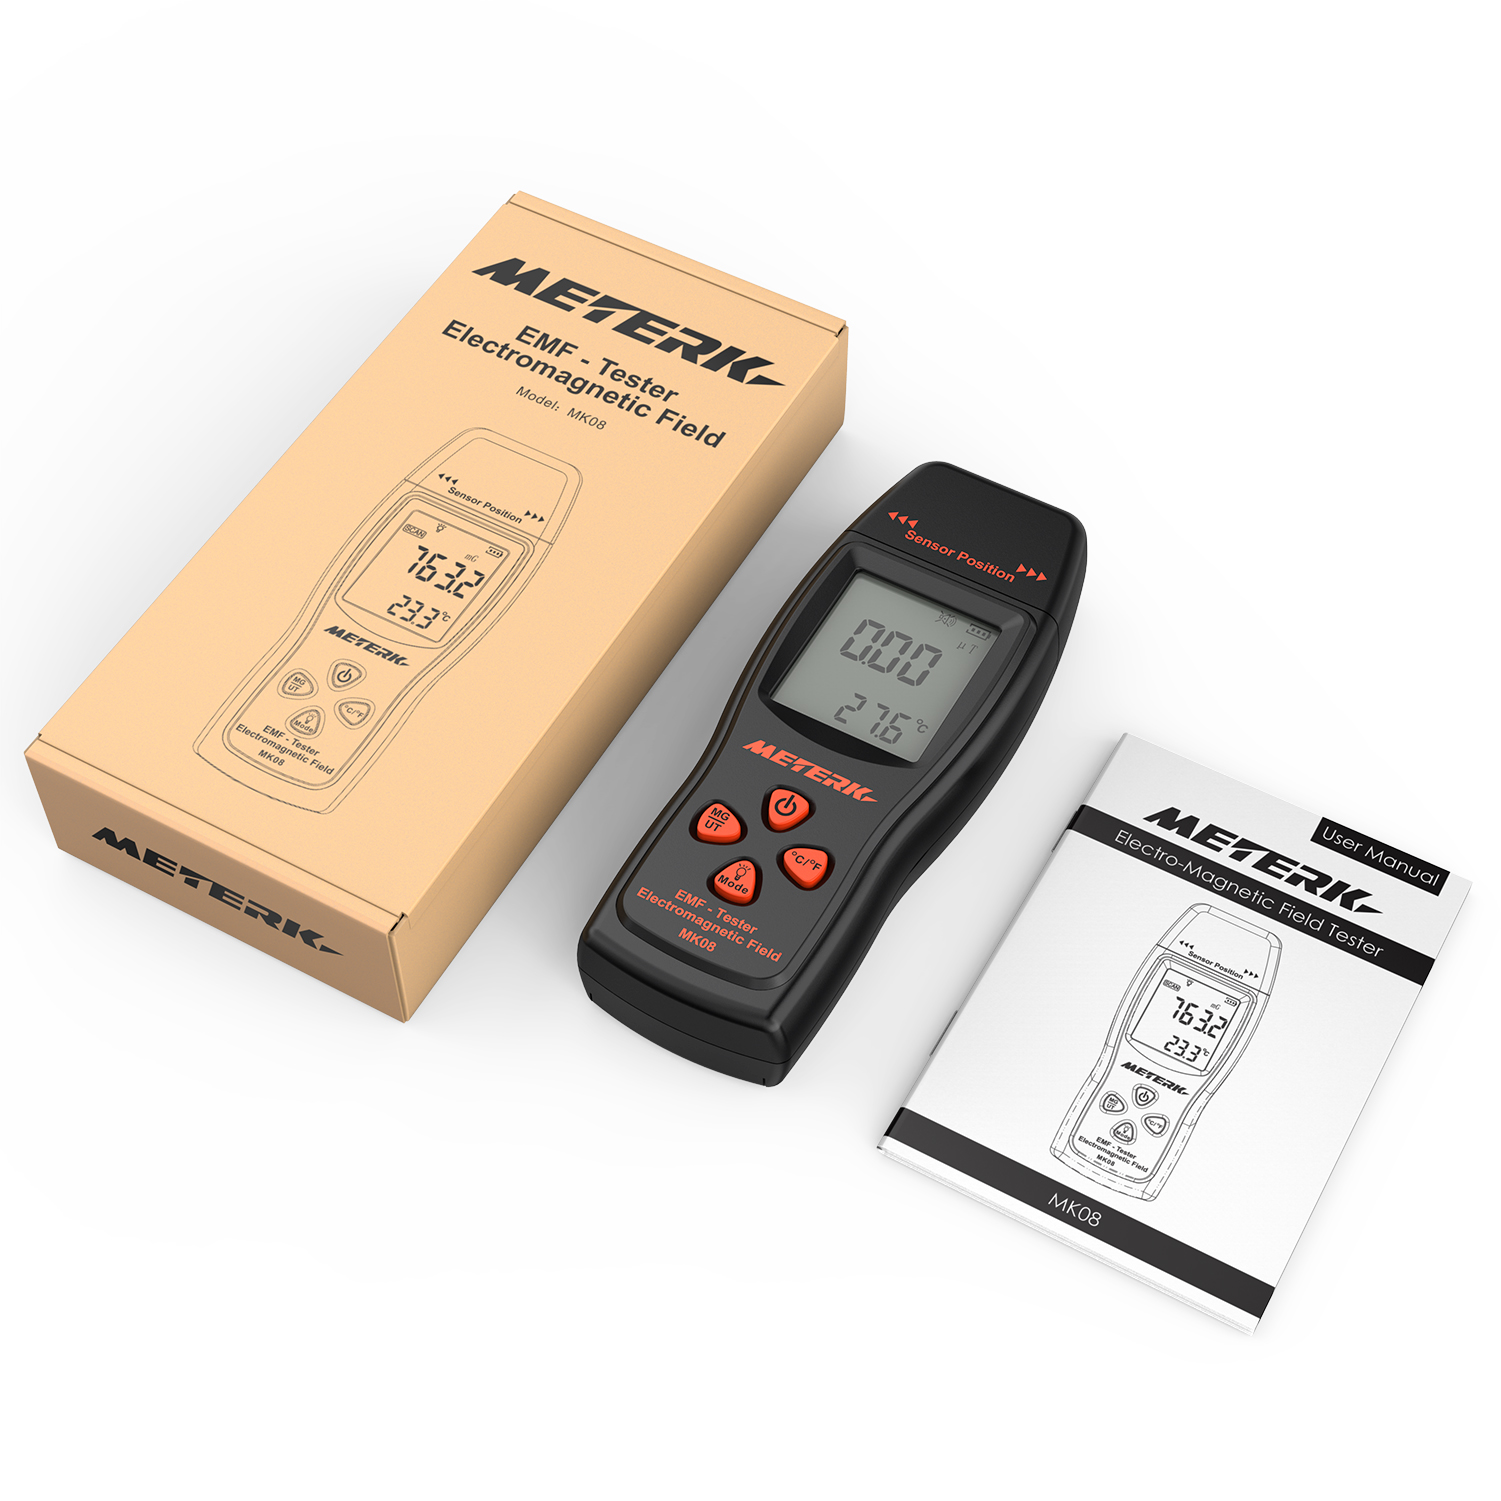 EMF Meter Electromagnetic Field Radiation Detector Handheld Mini Digital LCD EMF Detector Dosimeter Tester Counter